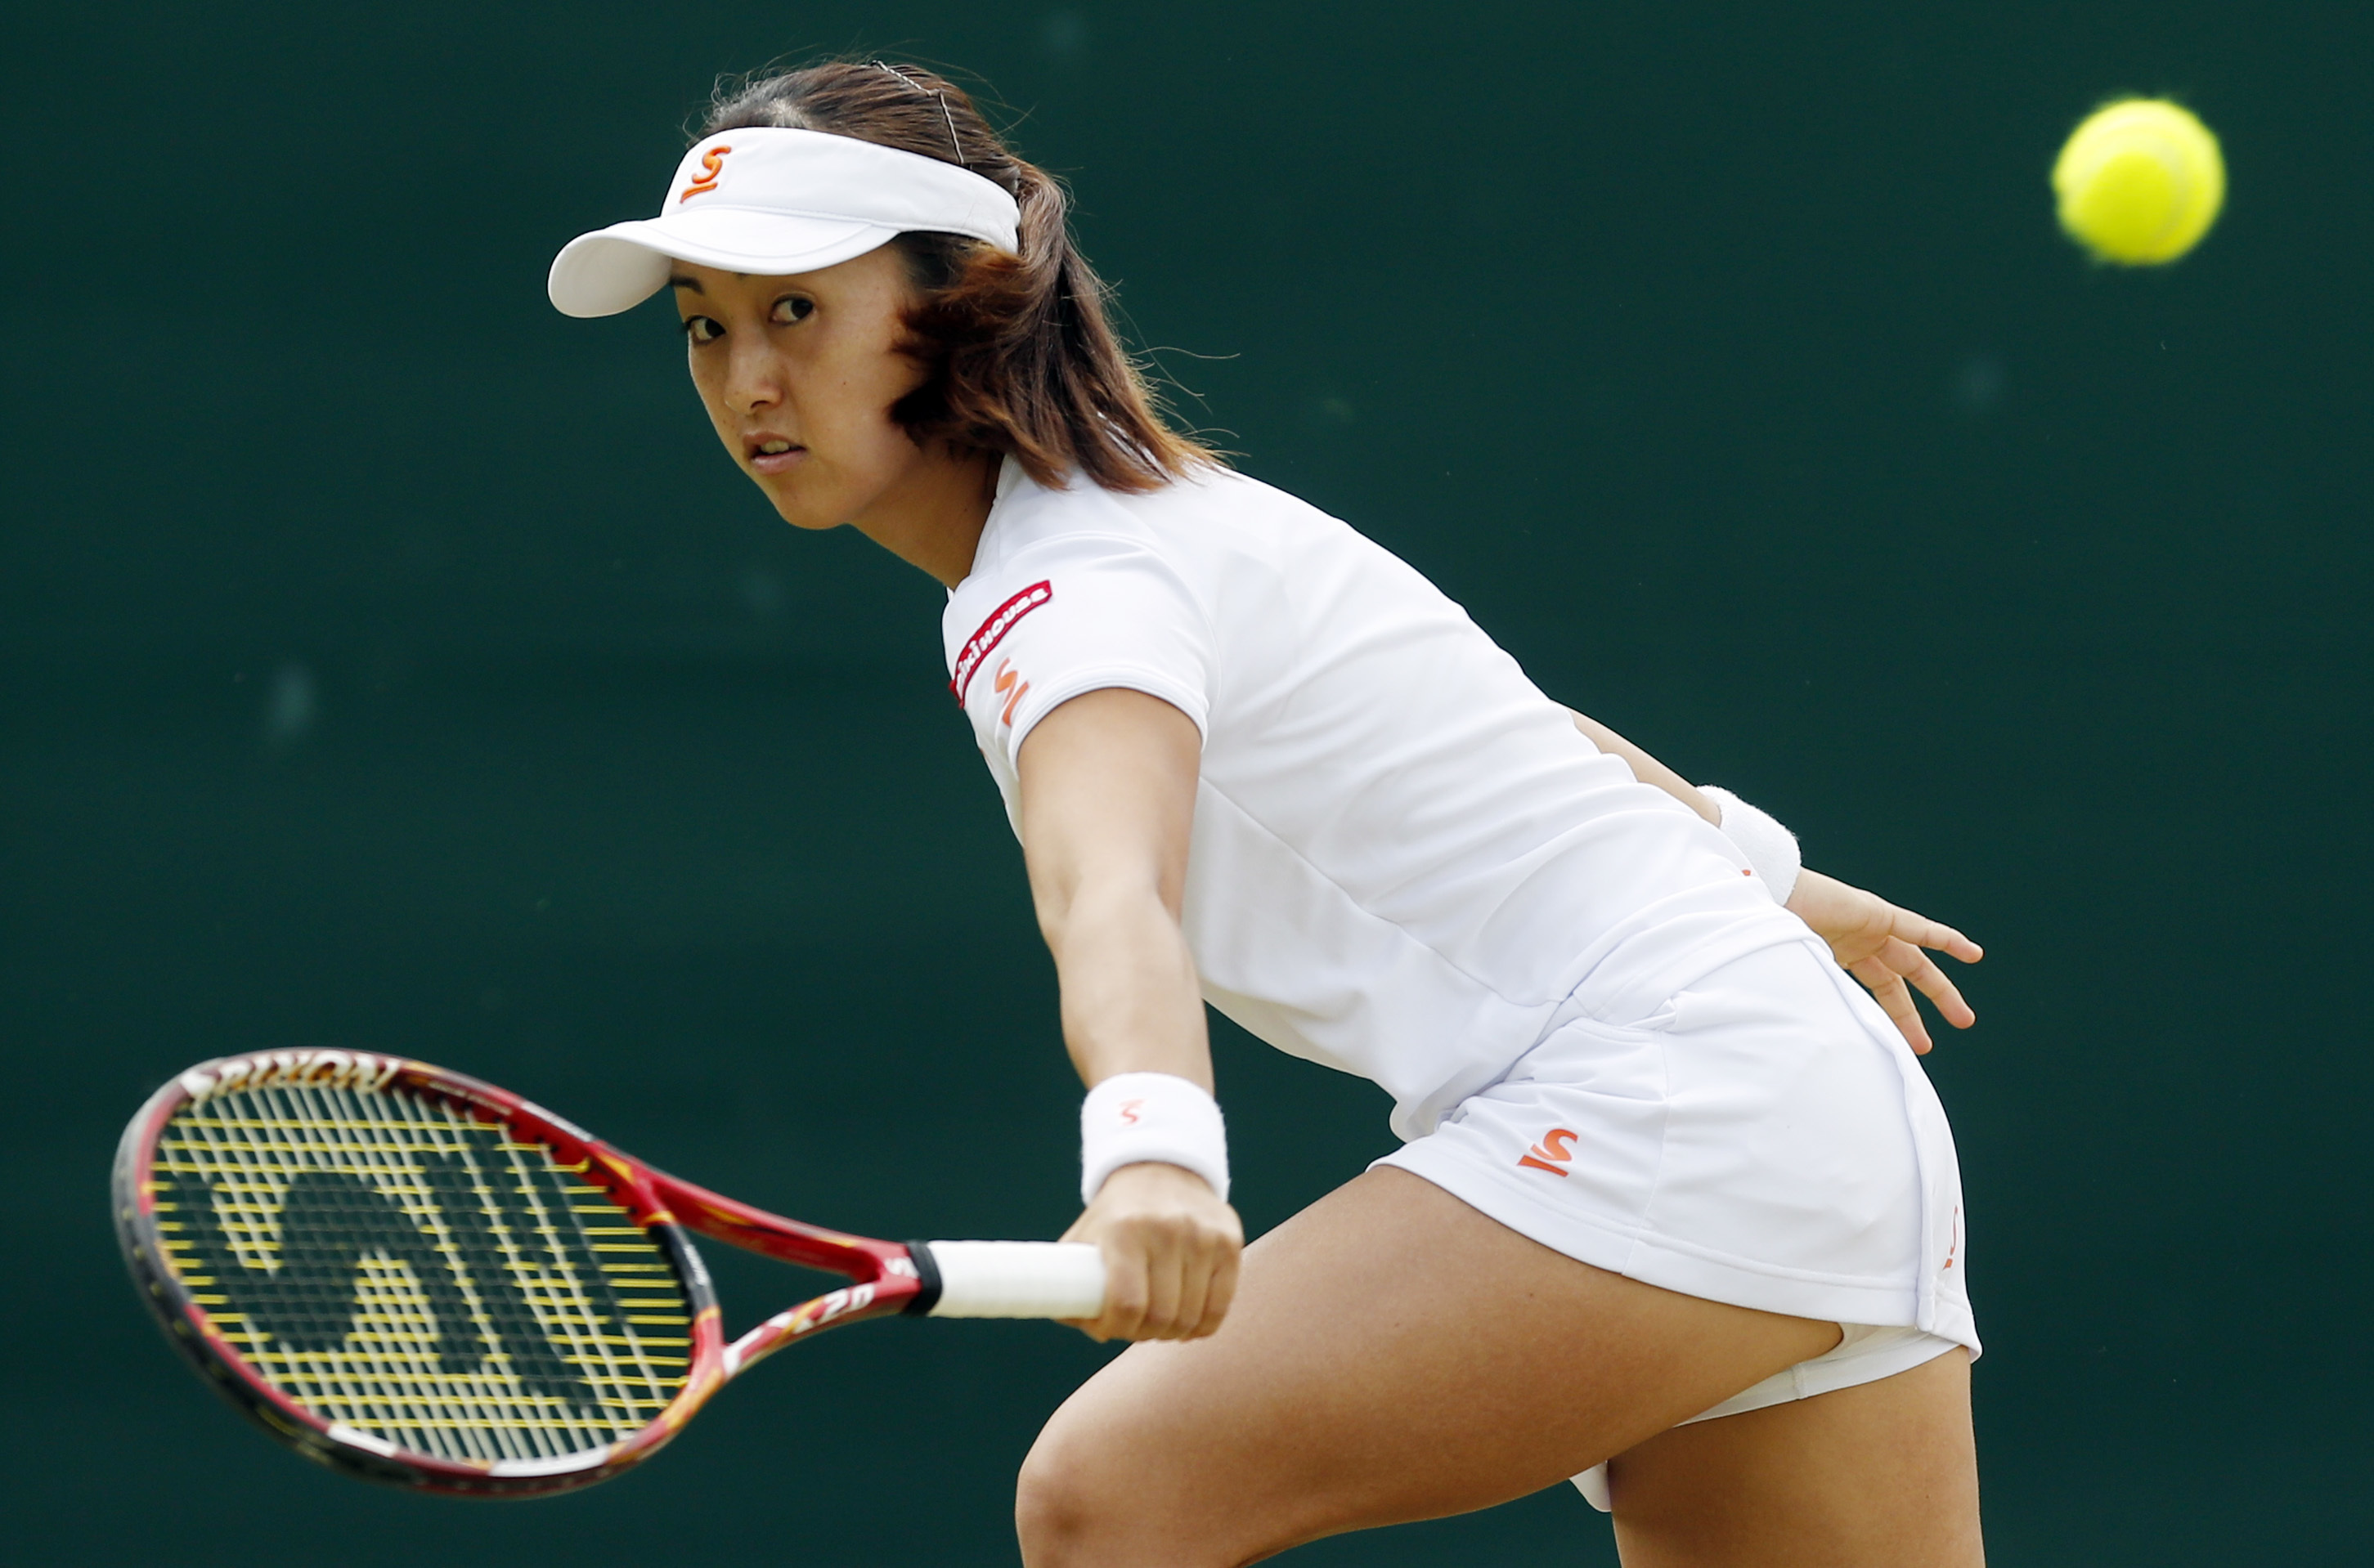 Misaki Doi of Japan warms up before her women's singles match against Angelique Kerber of Germany on day eight of the Wimbledon Tennis Championships in London, London, Monday, July, 4, 2016. (AP Photo/Ben Curtis)